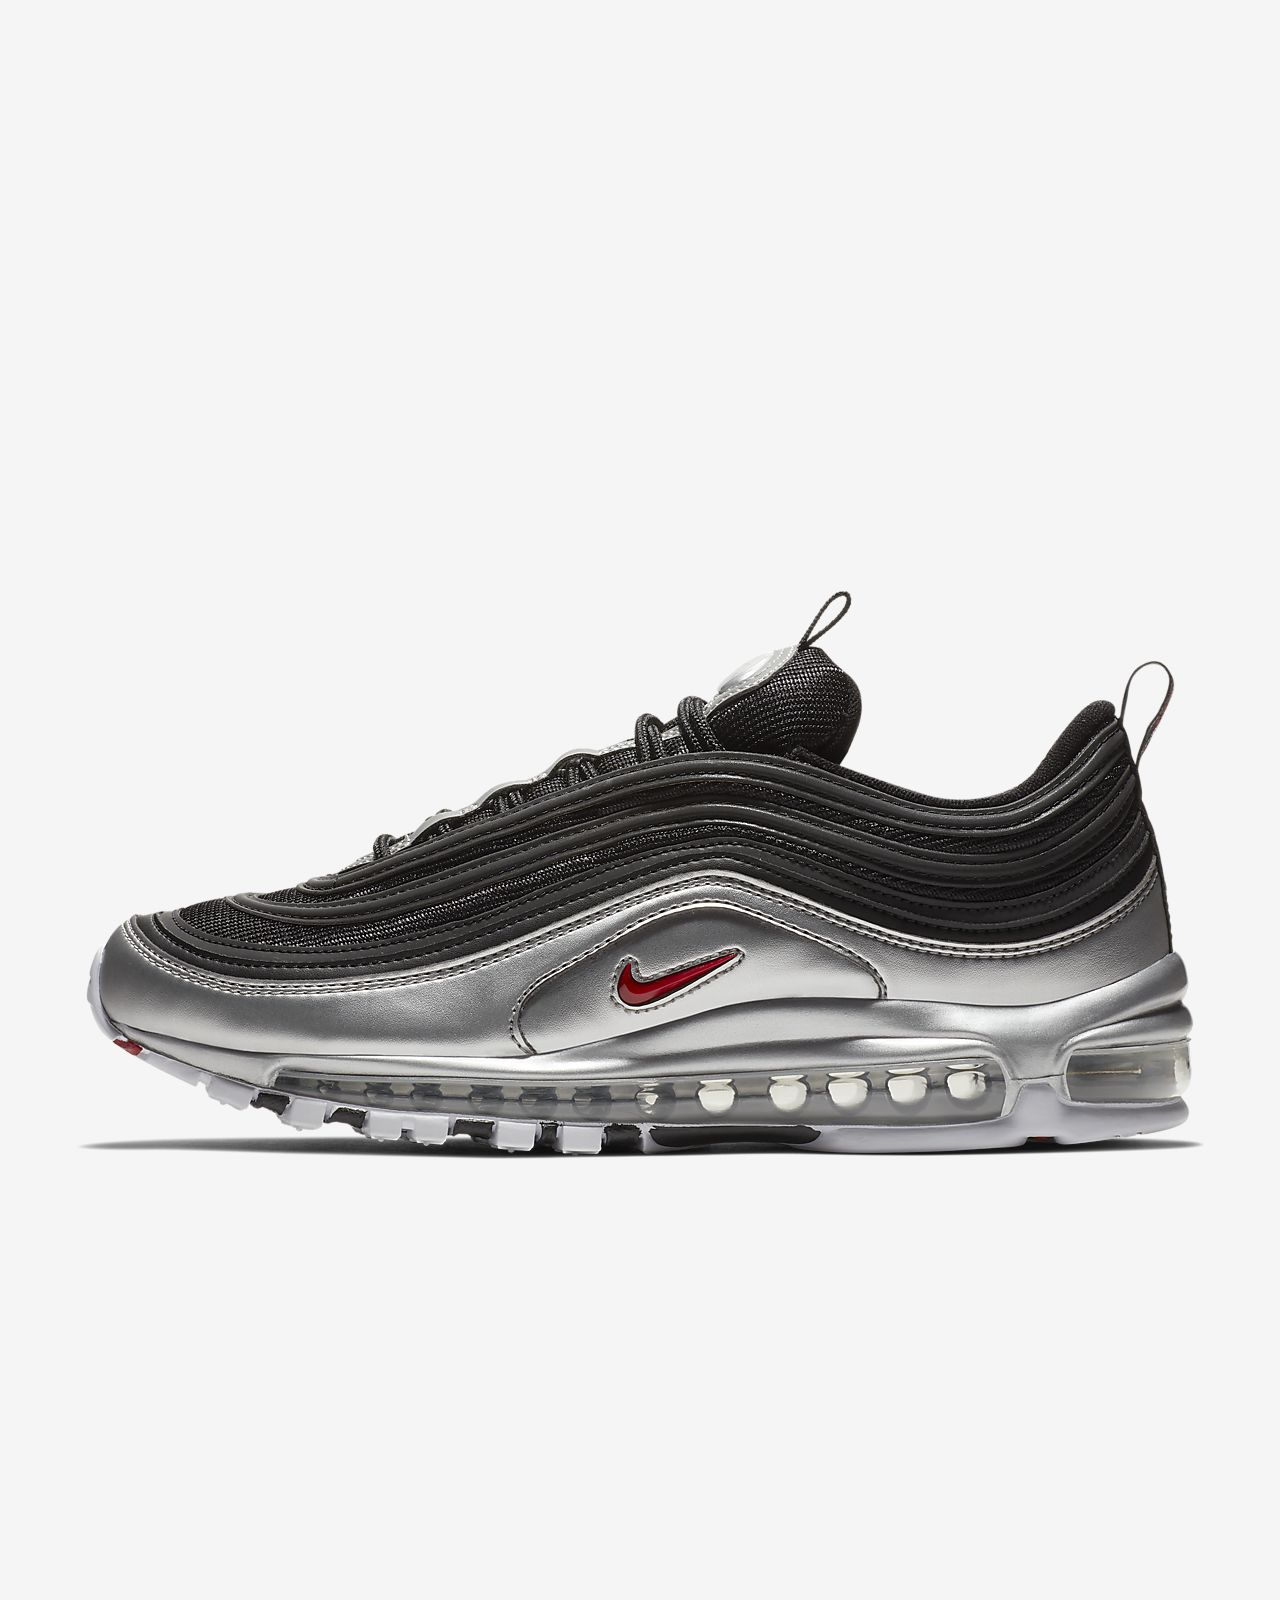 newest 1ce35 9adb4 ... Chaussure Nike Air Max 97 QS pour Homme